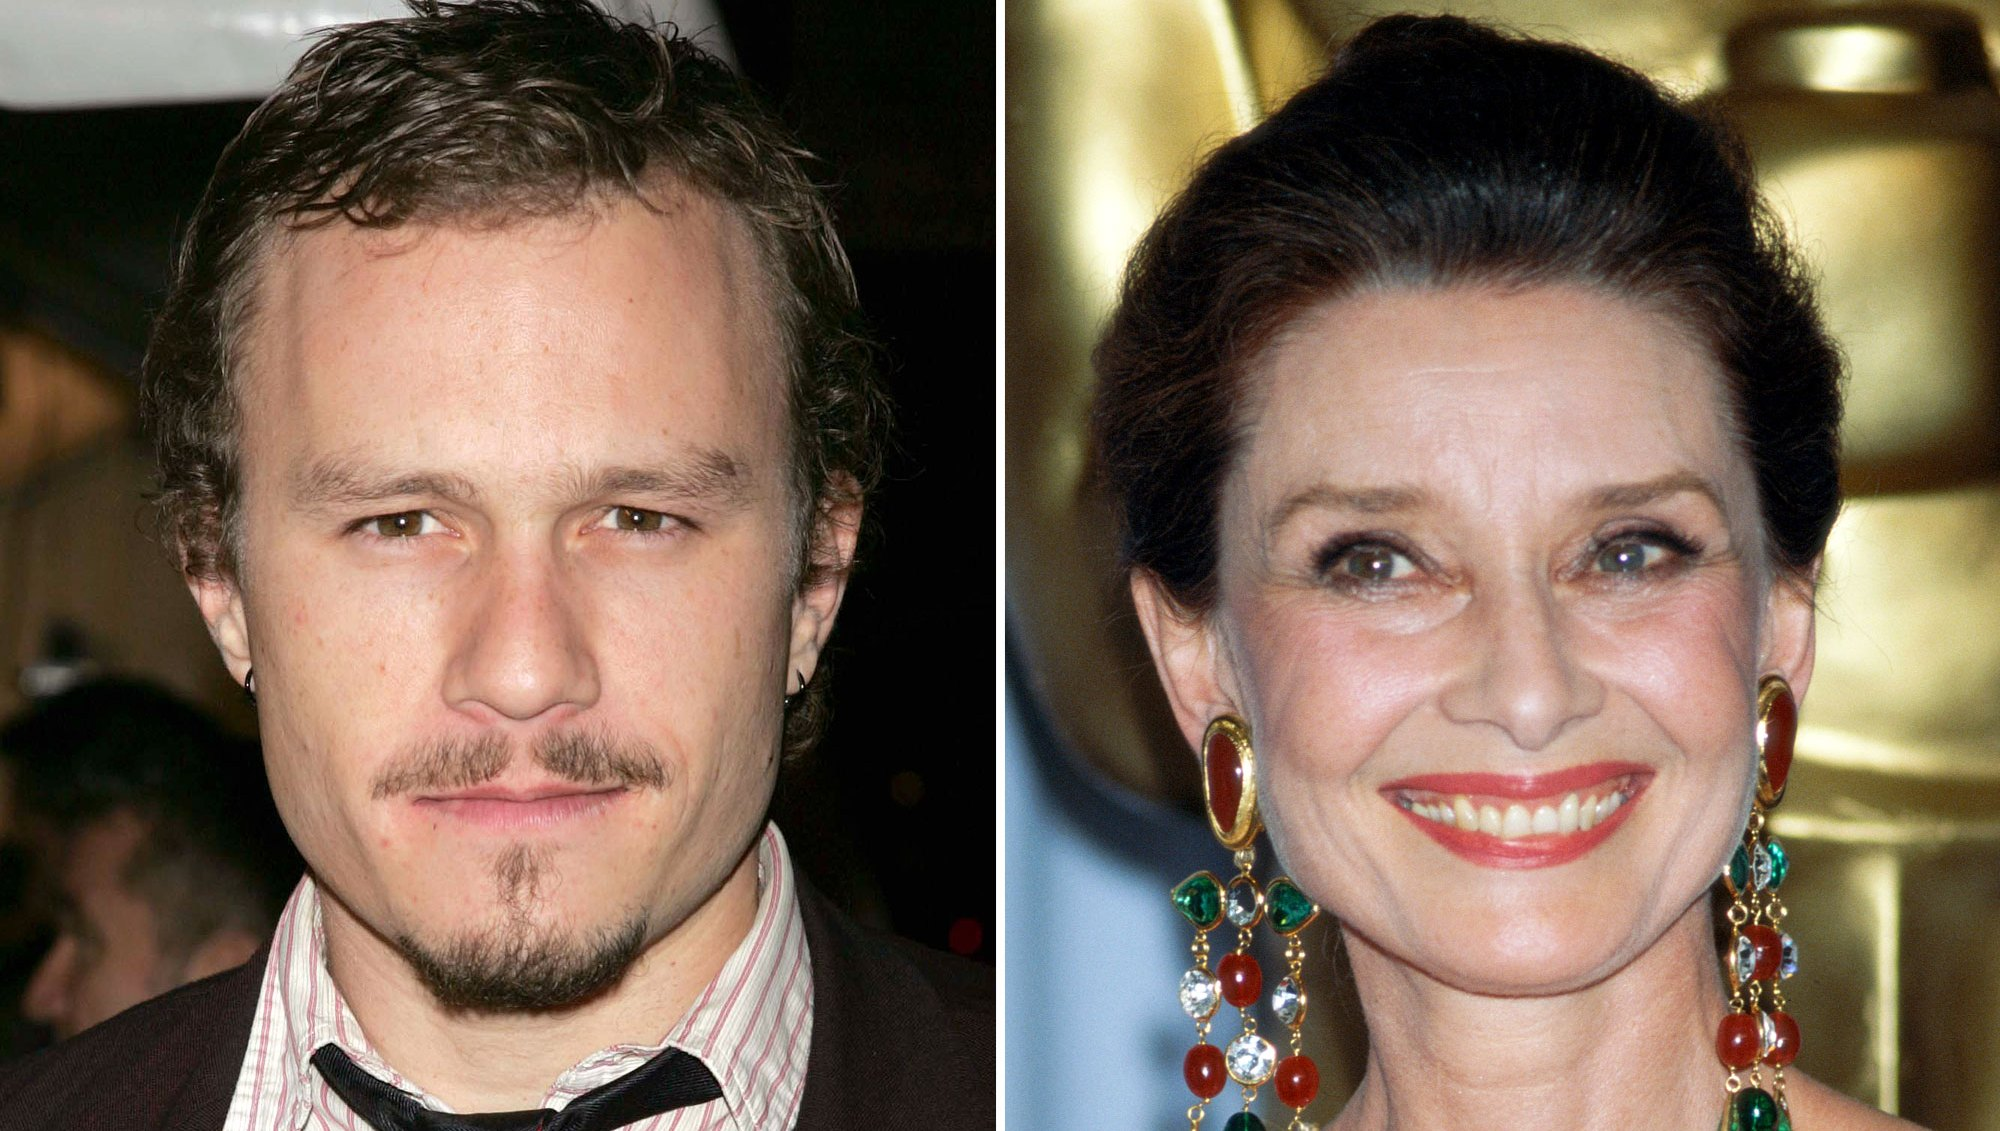 Heath Ledger, Audrey Hepburn and More Stars Who Won Awards Posthumously